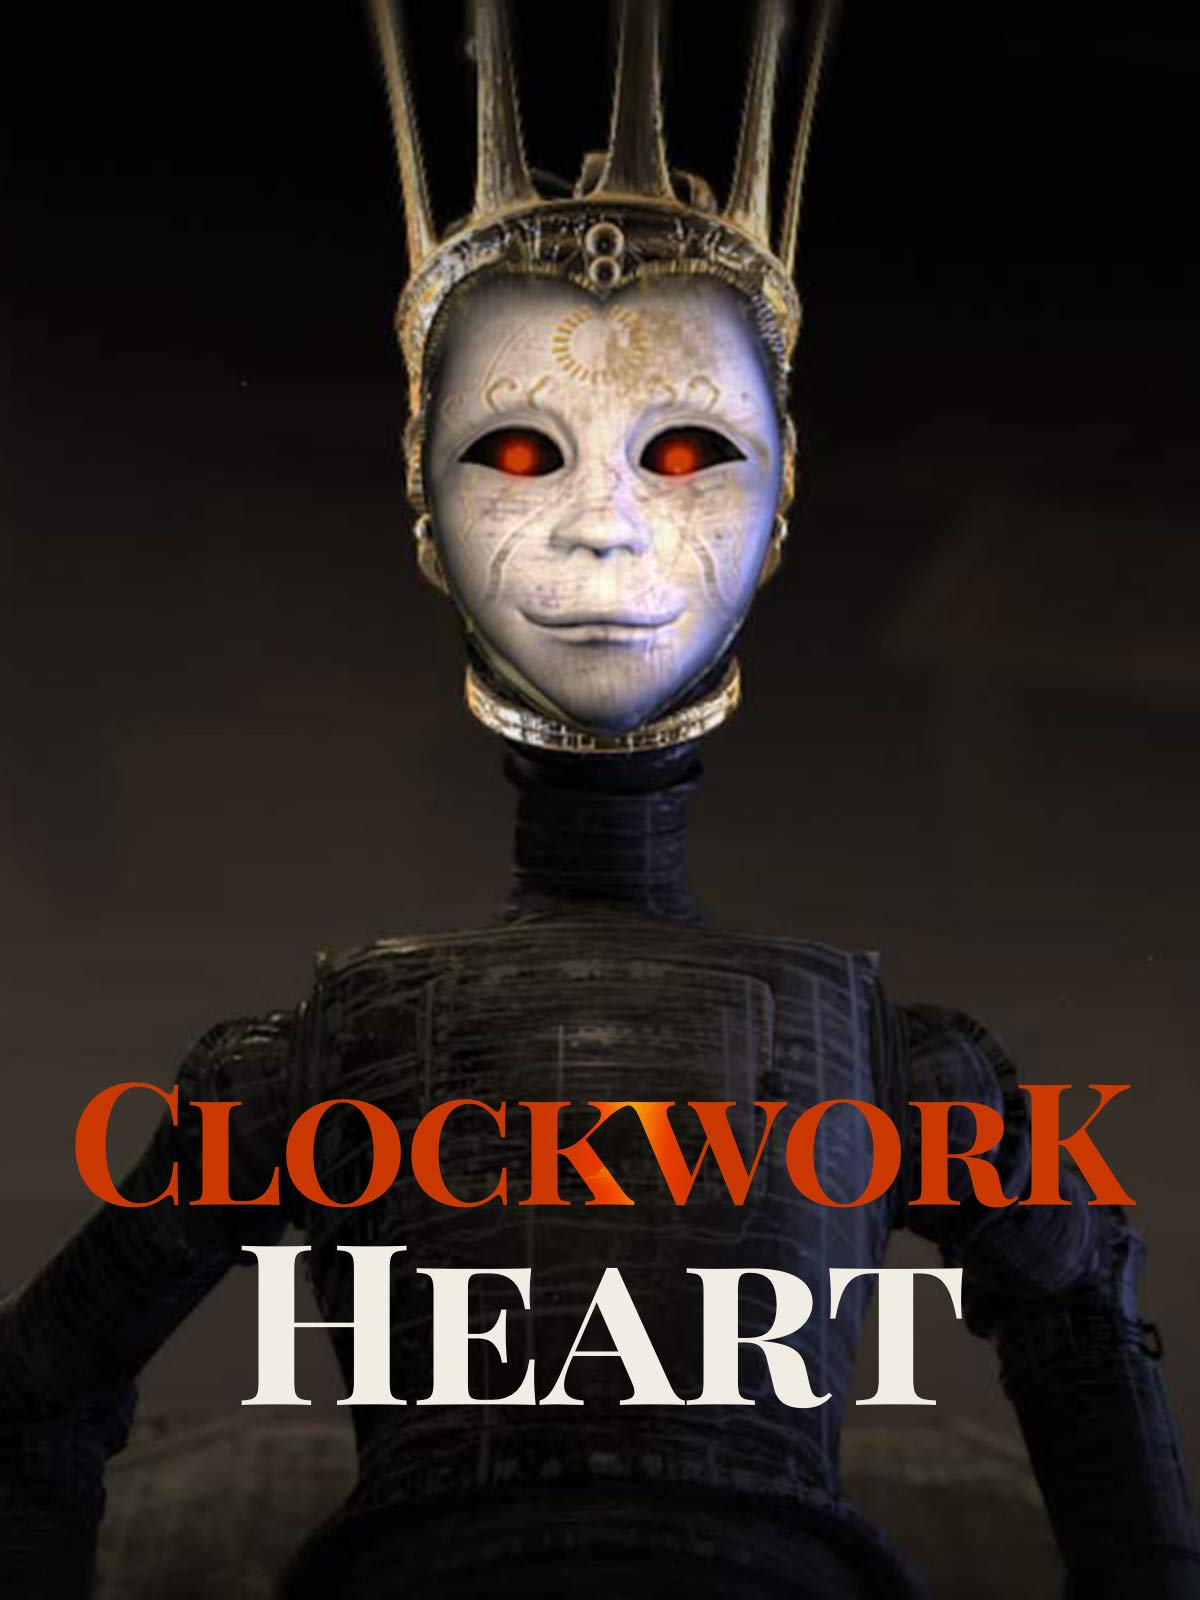 Clockwork Heart